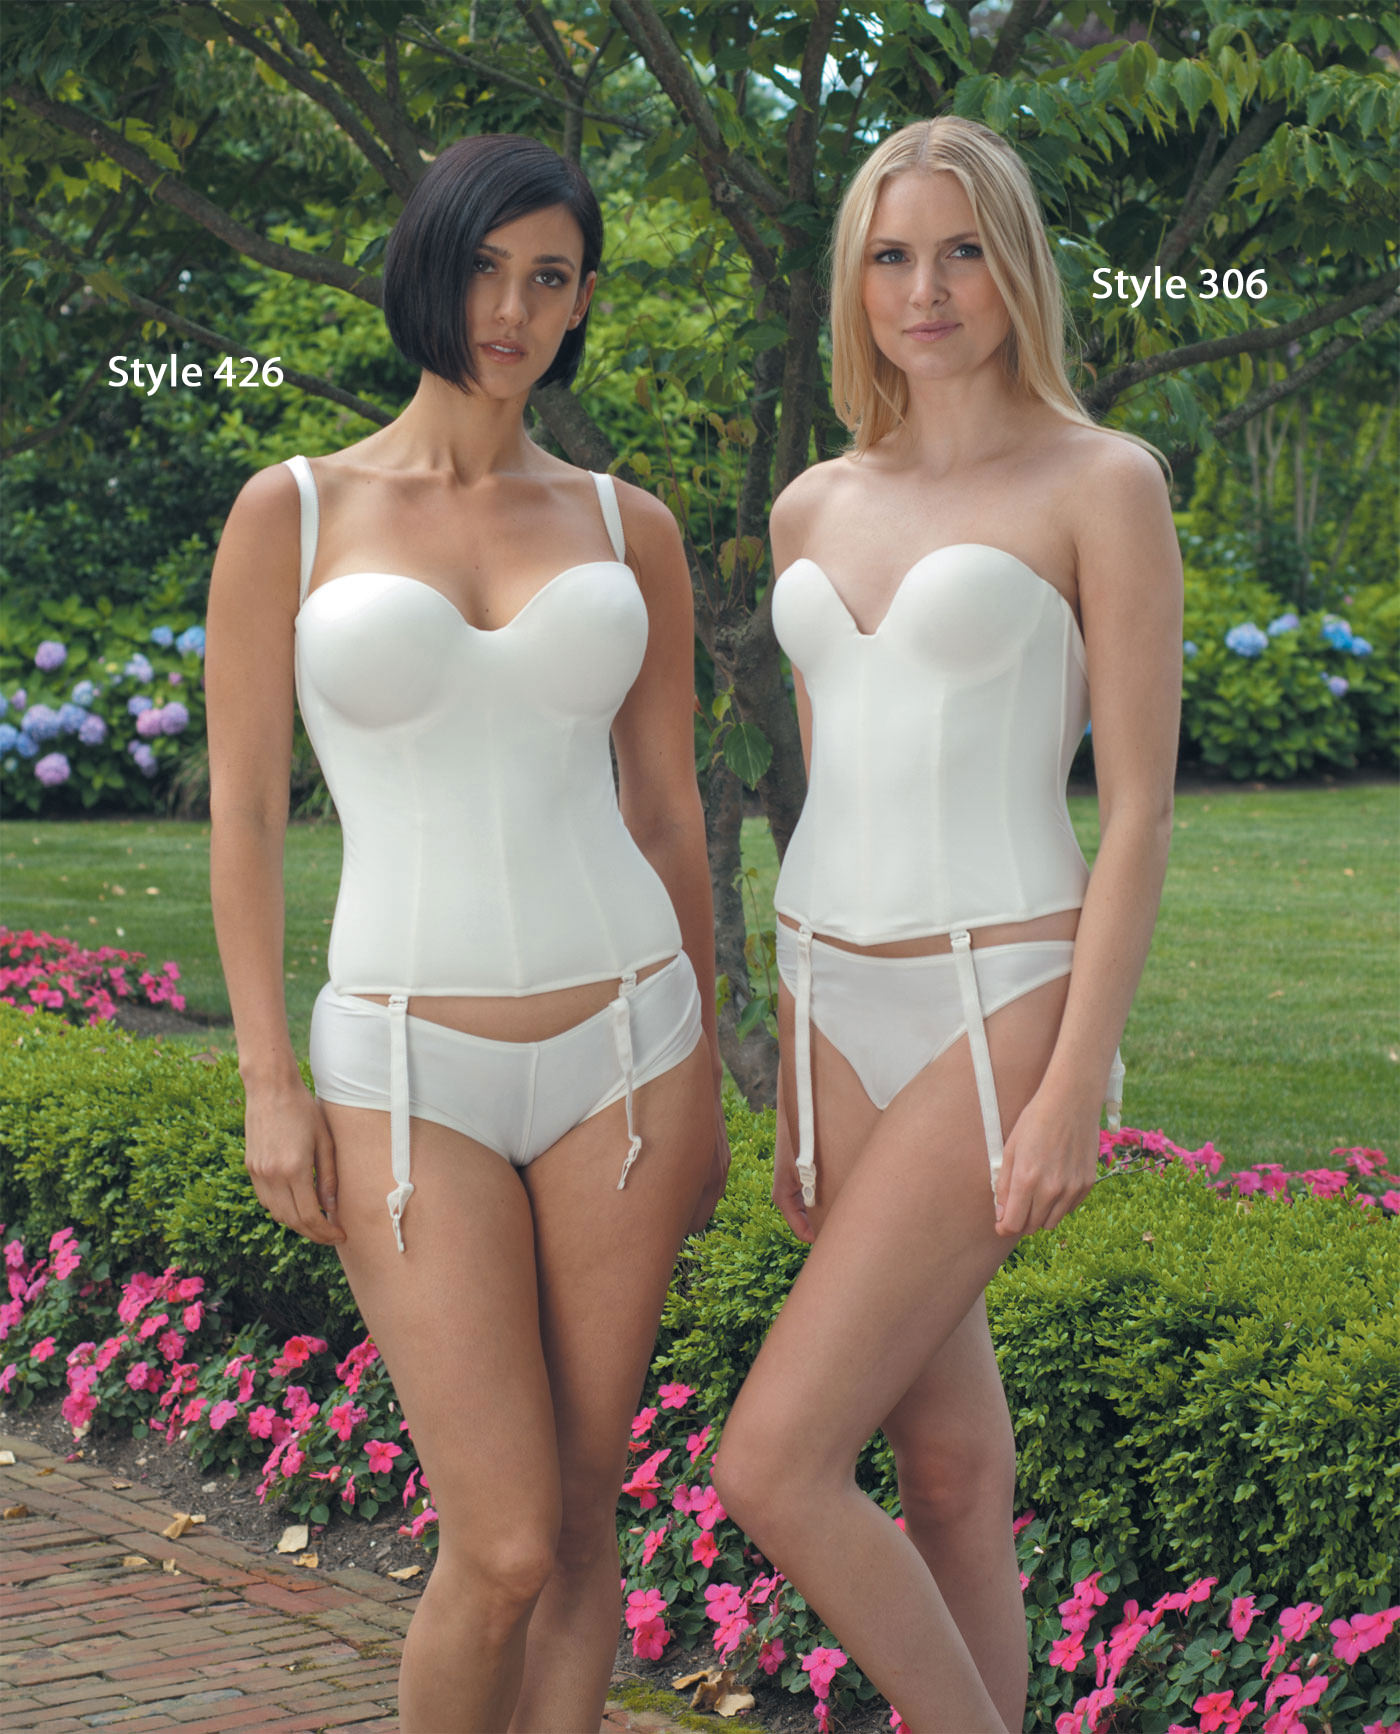 5d7b52f3c1682 Strapless Bustiers   Wholesale Bras   Lingerie by Carnival Creations ...